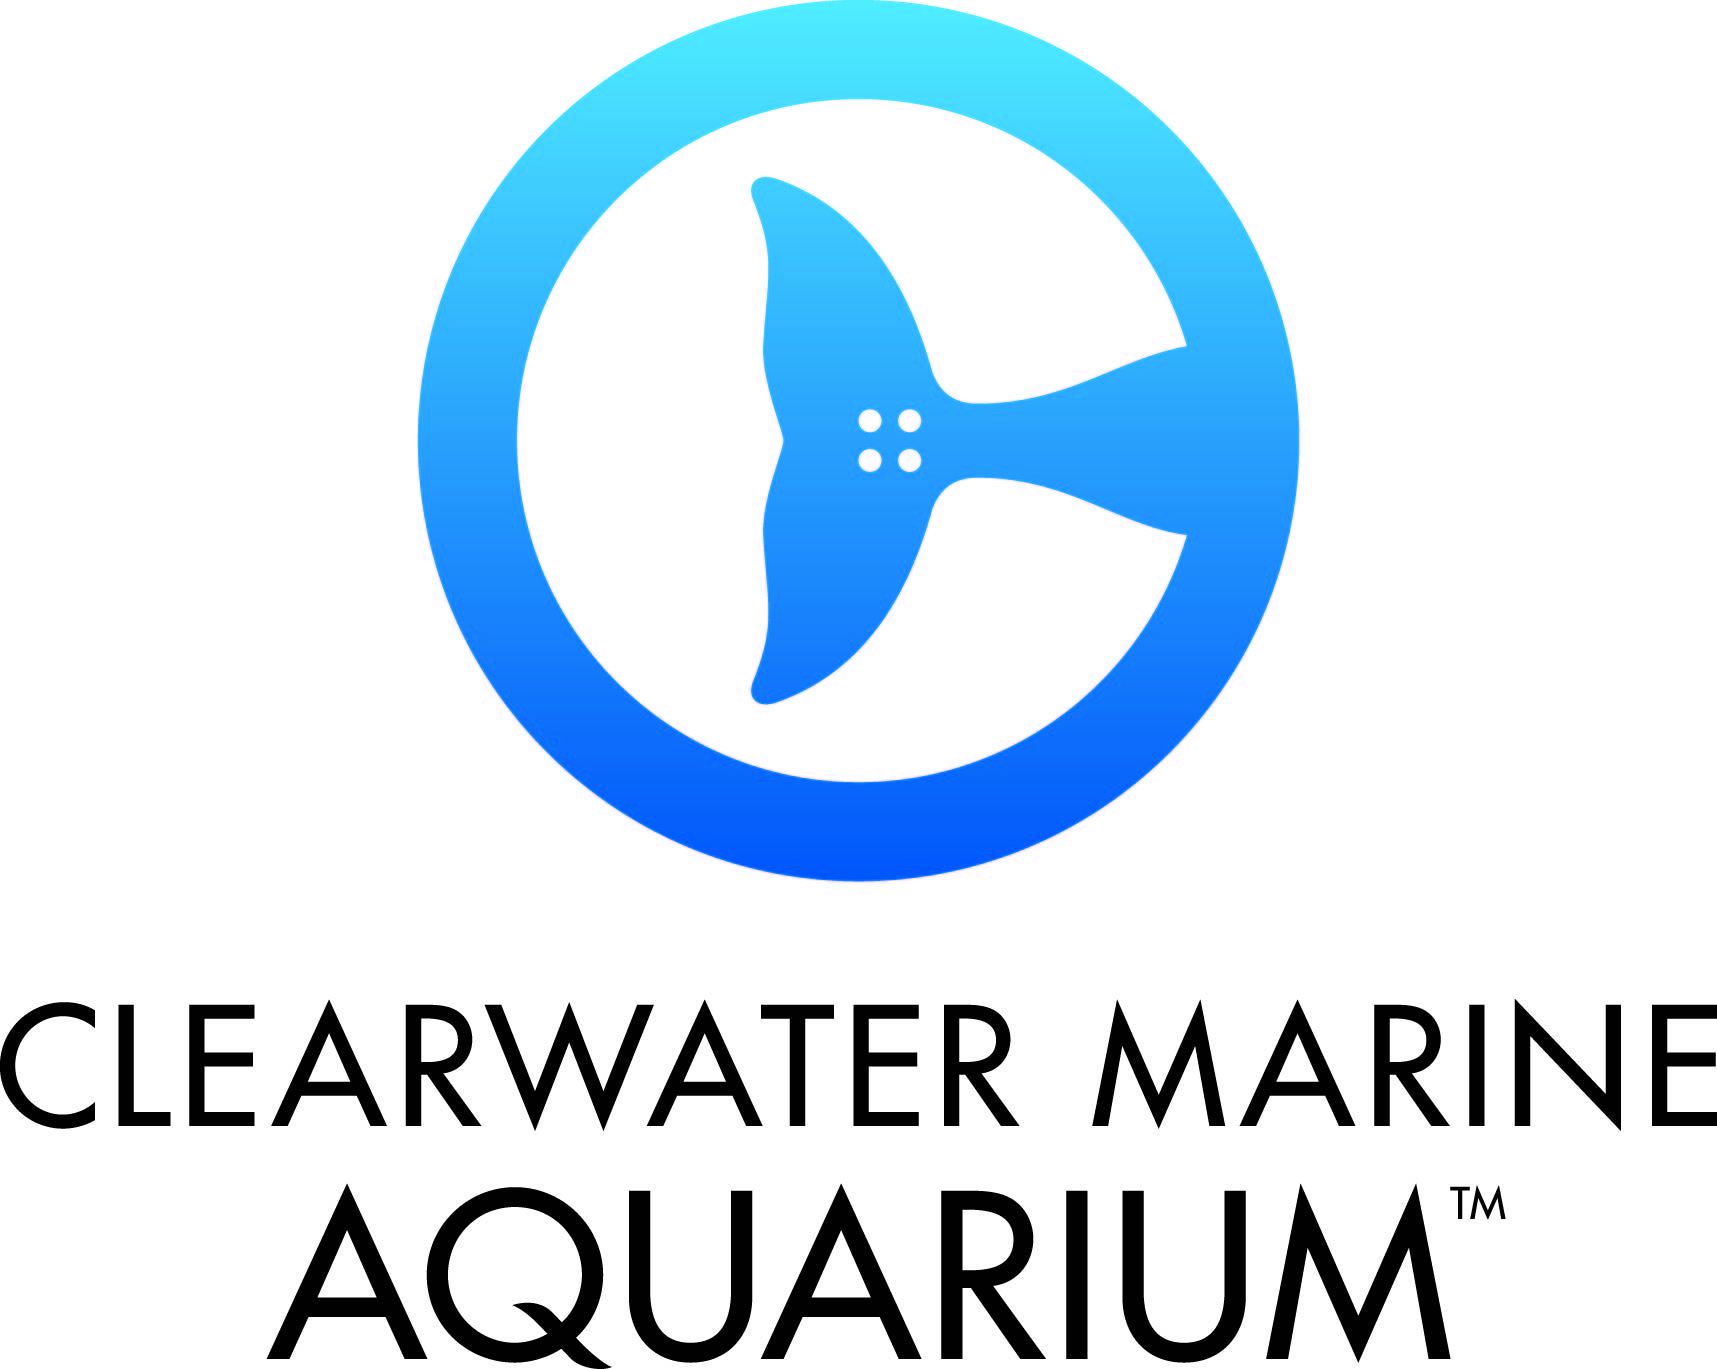 Fish aquarium jobs - Clearwater Marine Aquarium